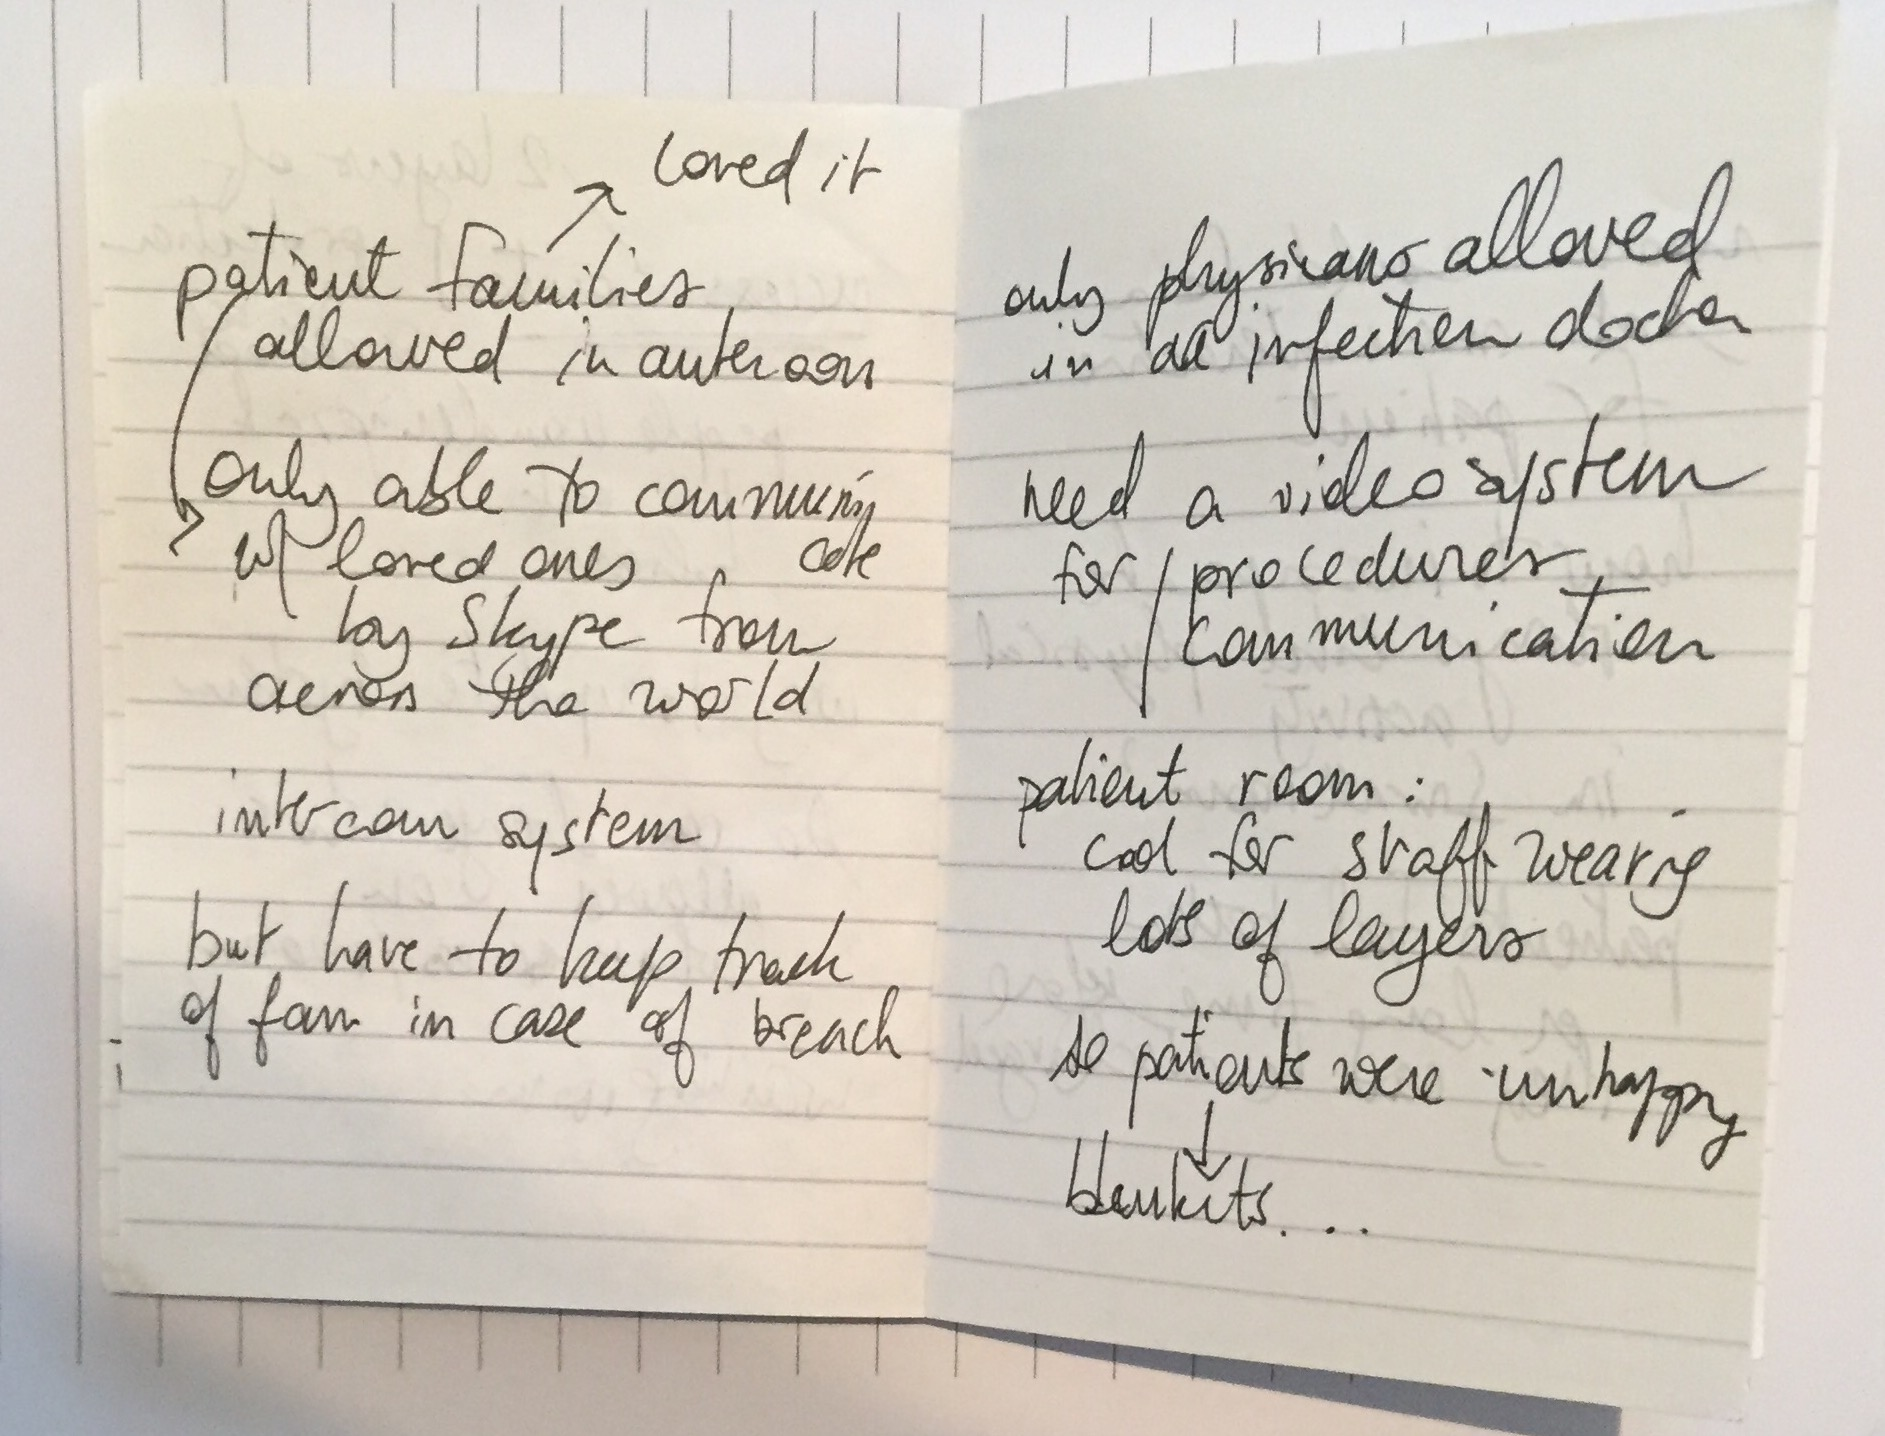 Notes from site visits